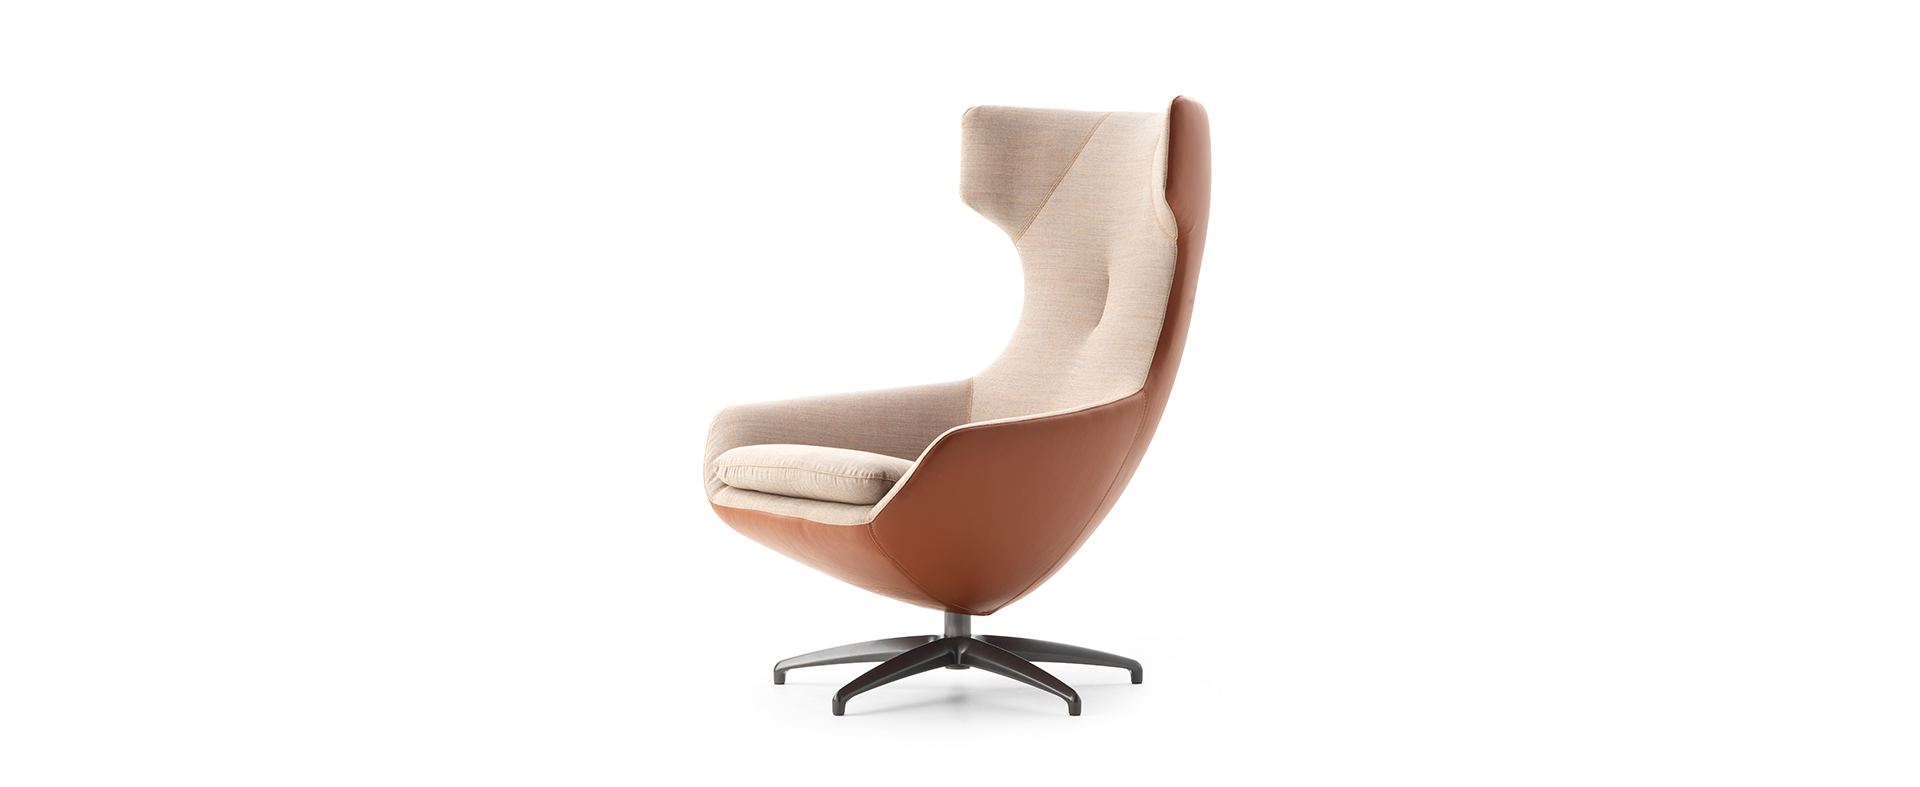 Leolux relaxfauteuil caruzzo 1.jpg